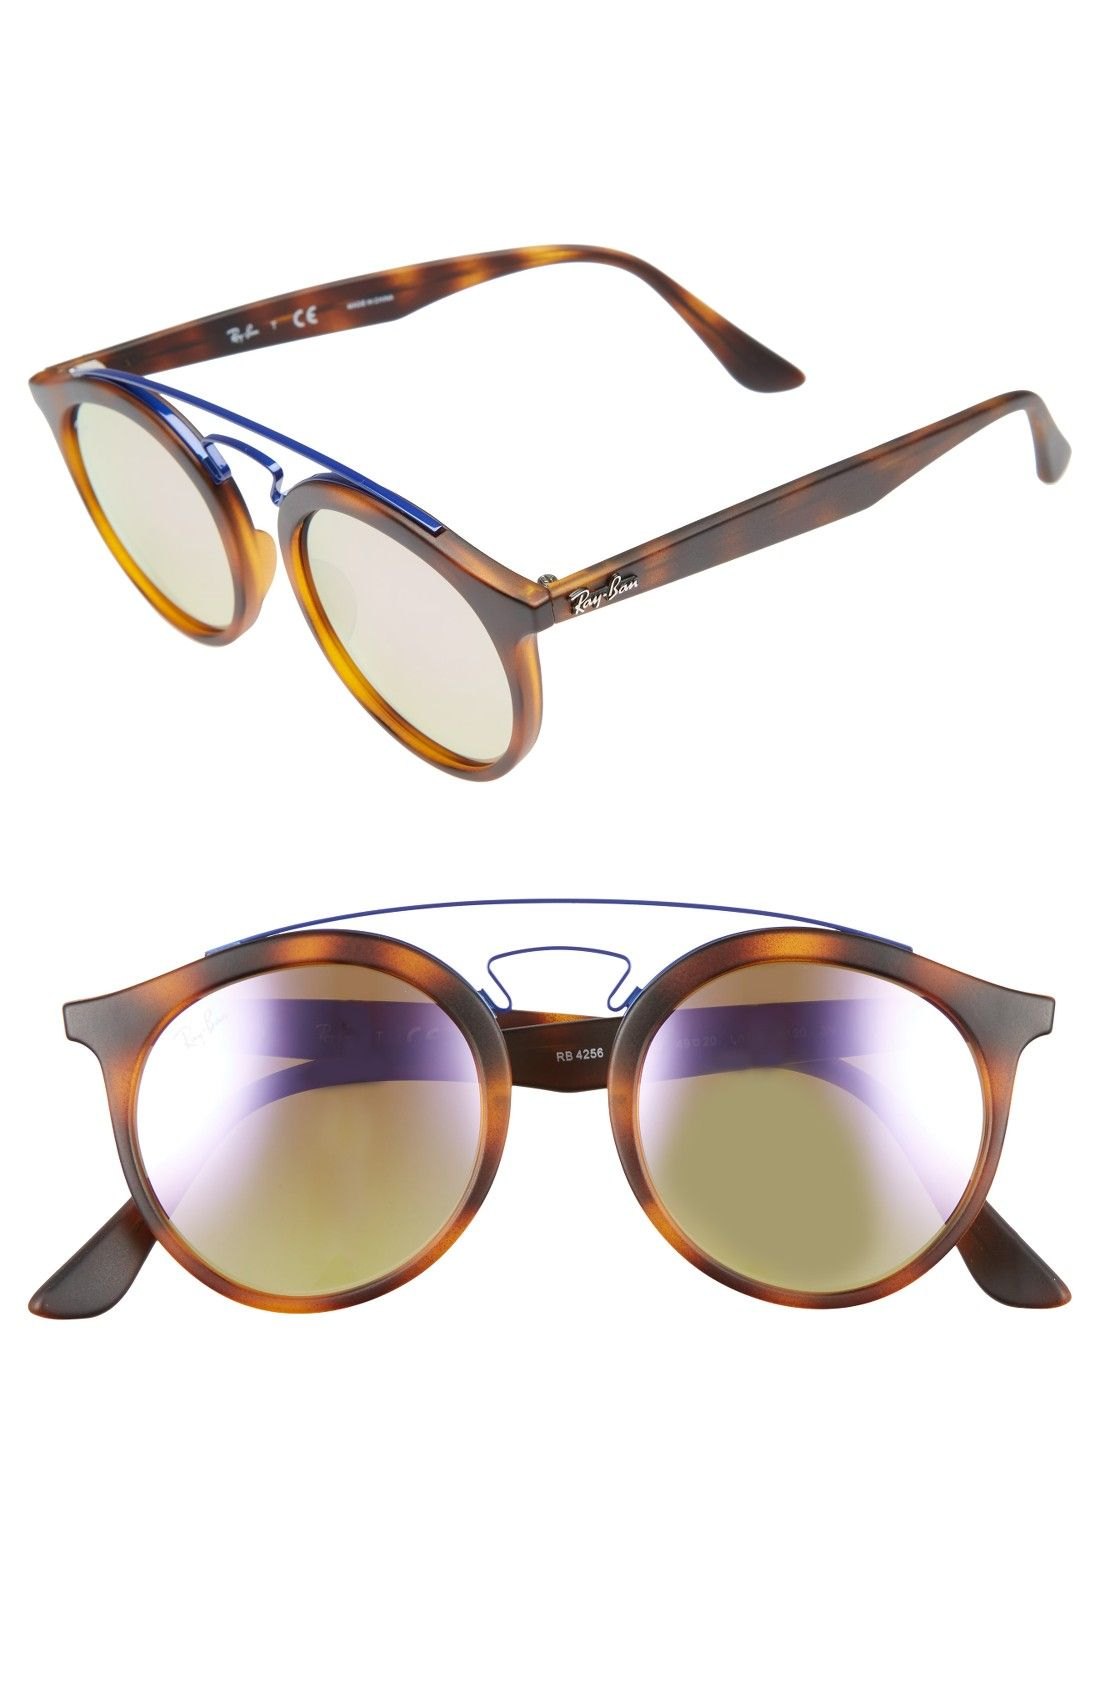 953079b4be Free shipping and returns on Ray-Ban 49mm Gatsby Round Sunglasses at  Nordstrom.com. Inspired by the iconic original